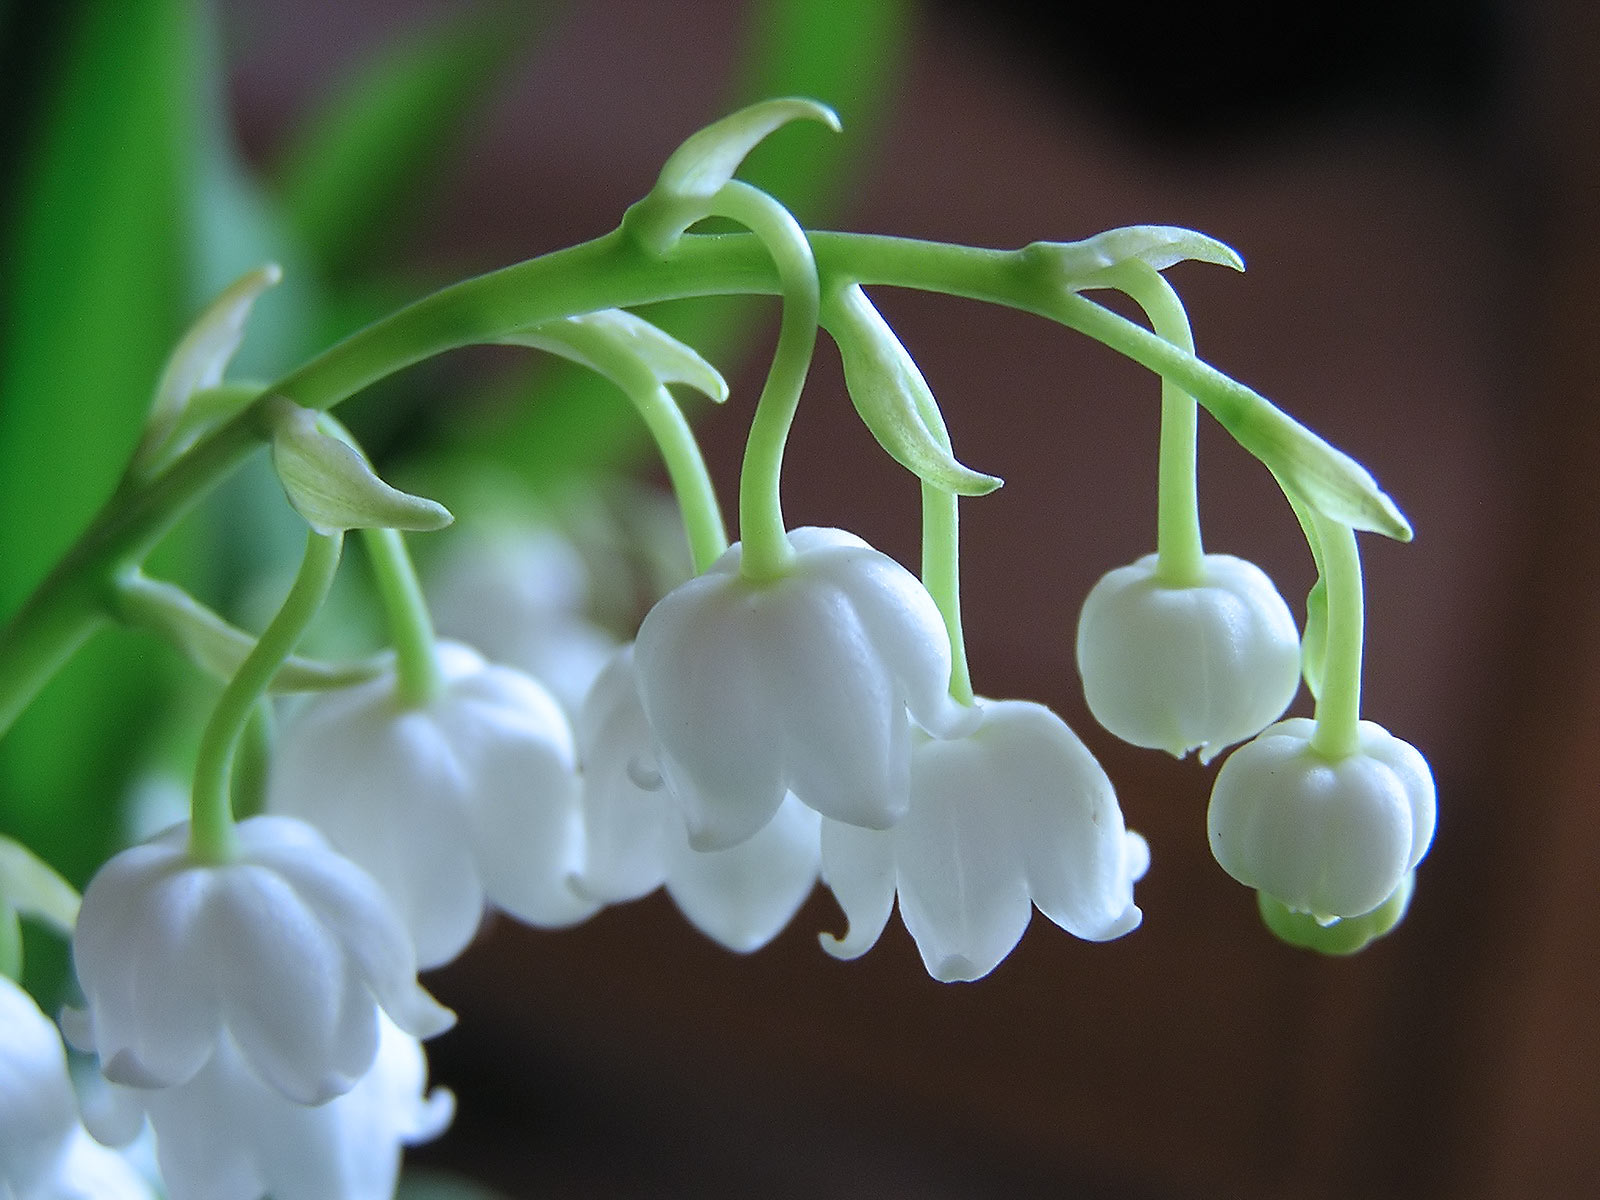 lily-of-the-valley-0120160101.jpg